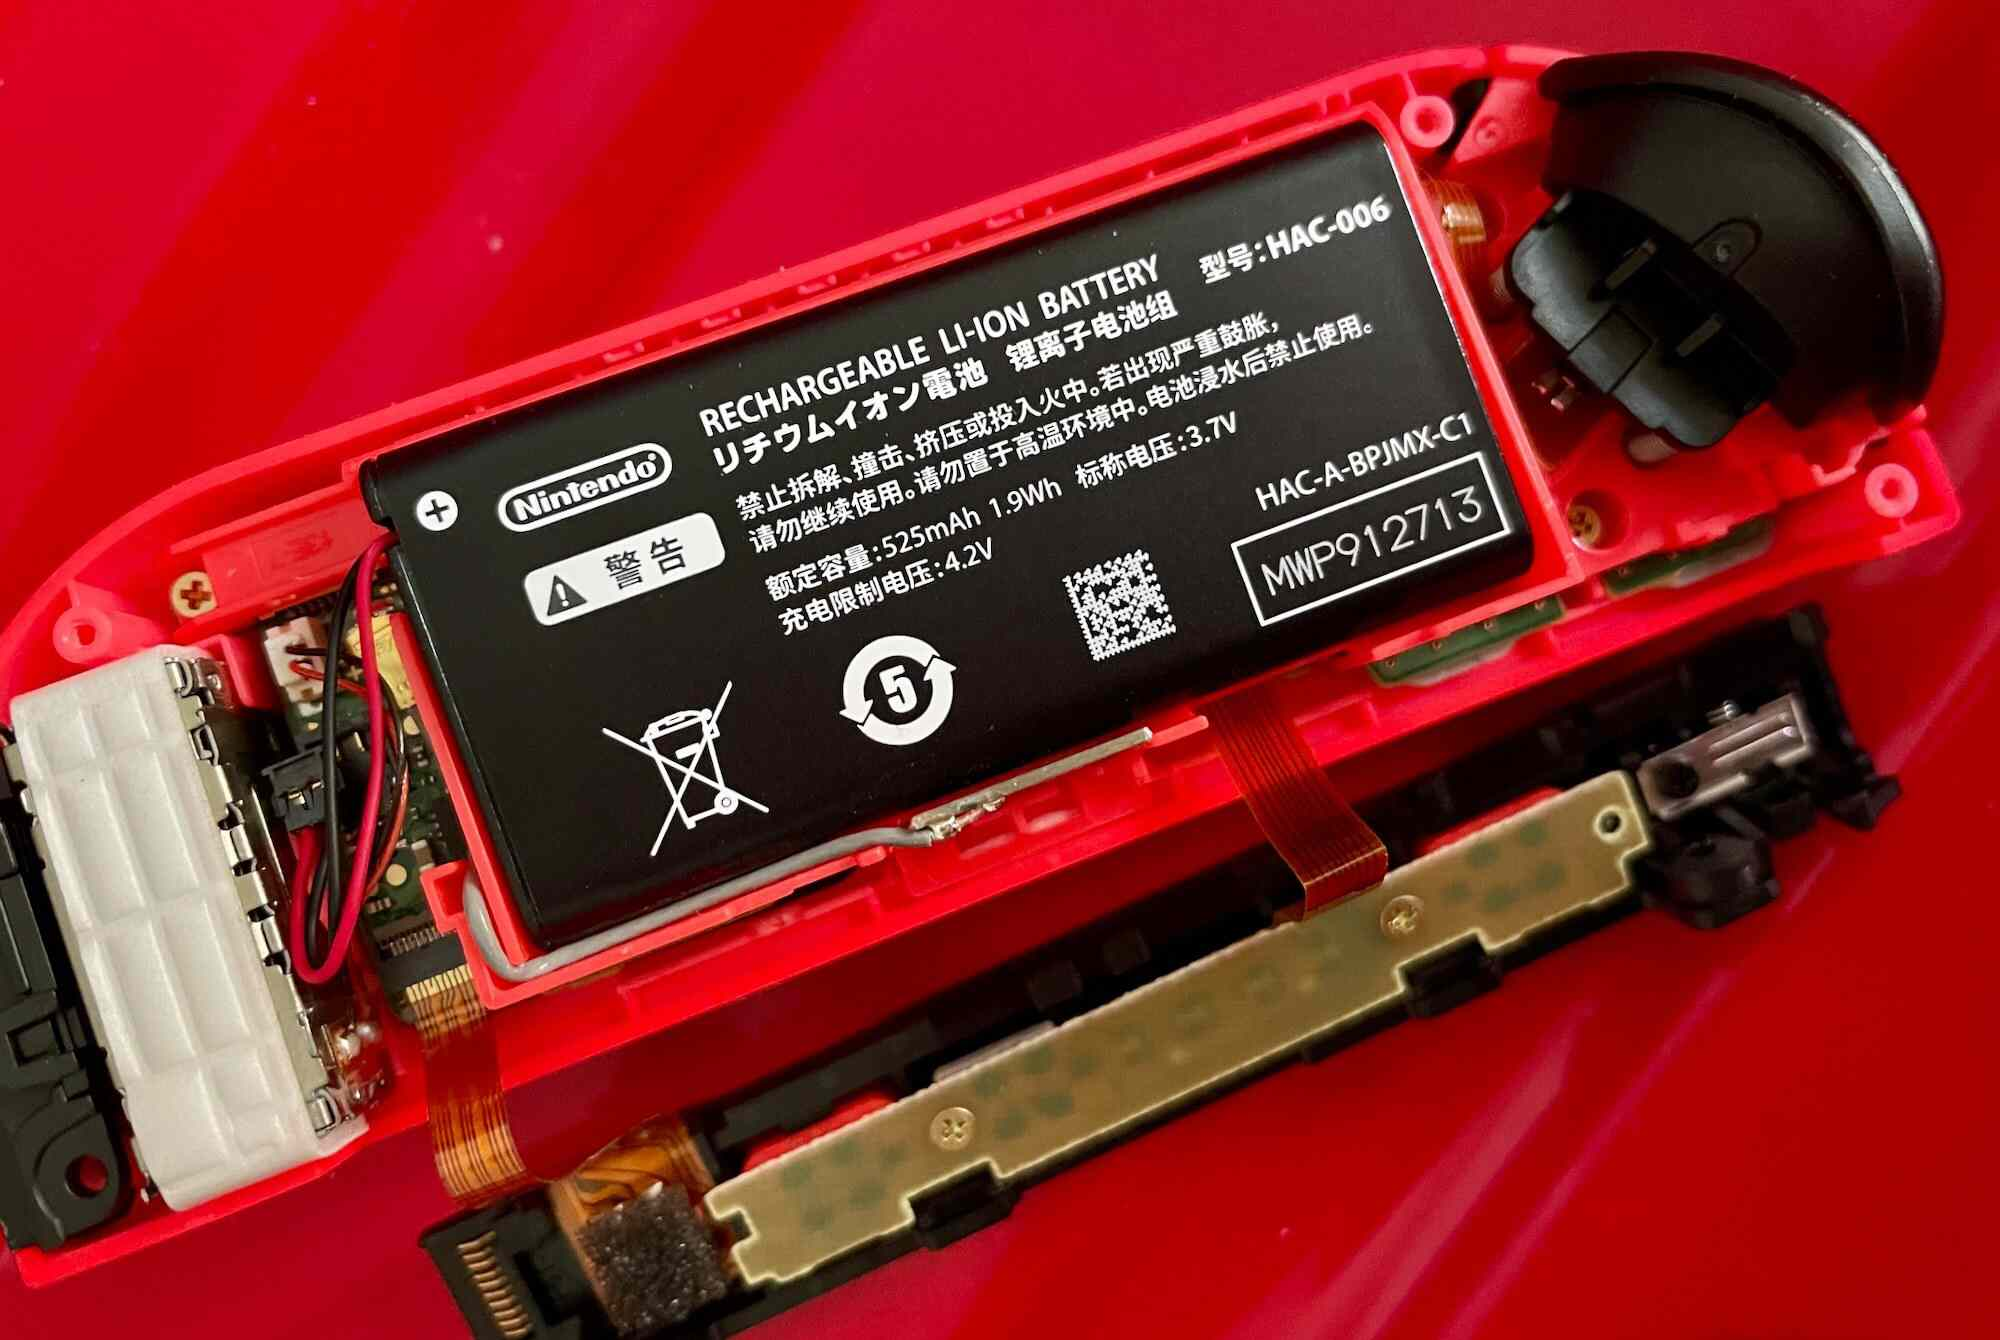 Inside look at the rechargeable li-ion battery inside the Nintendo Switch Joy Con controller